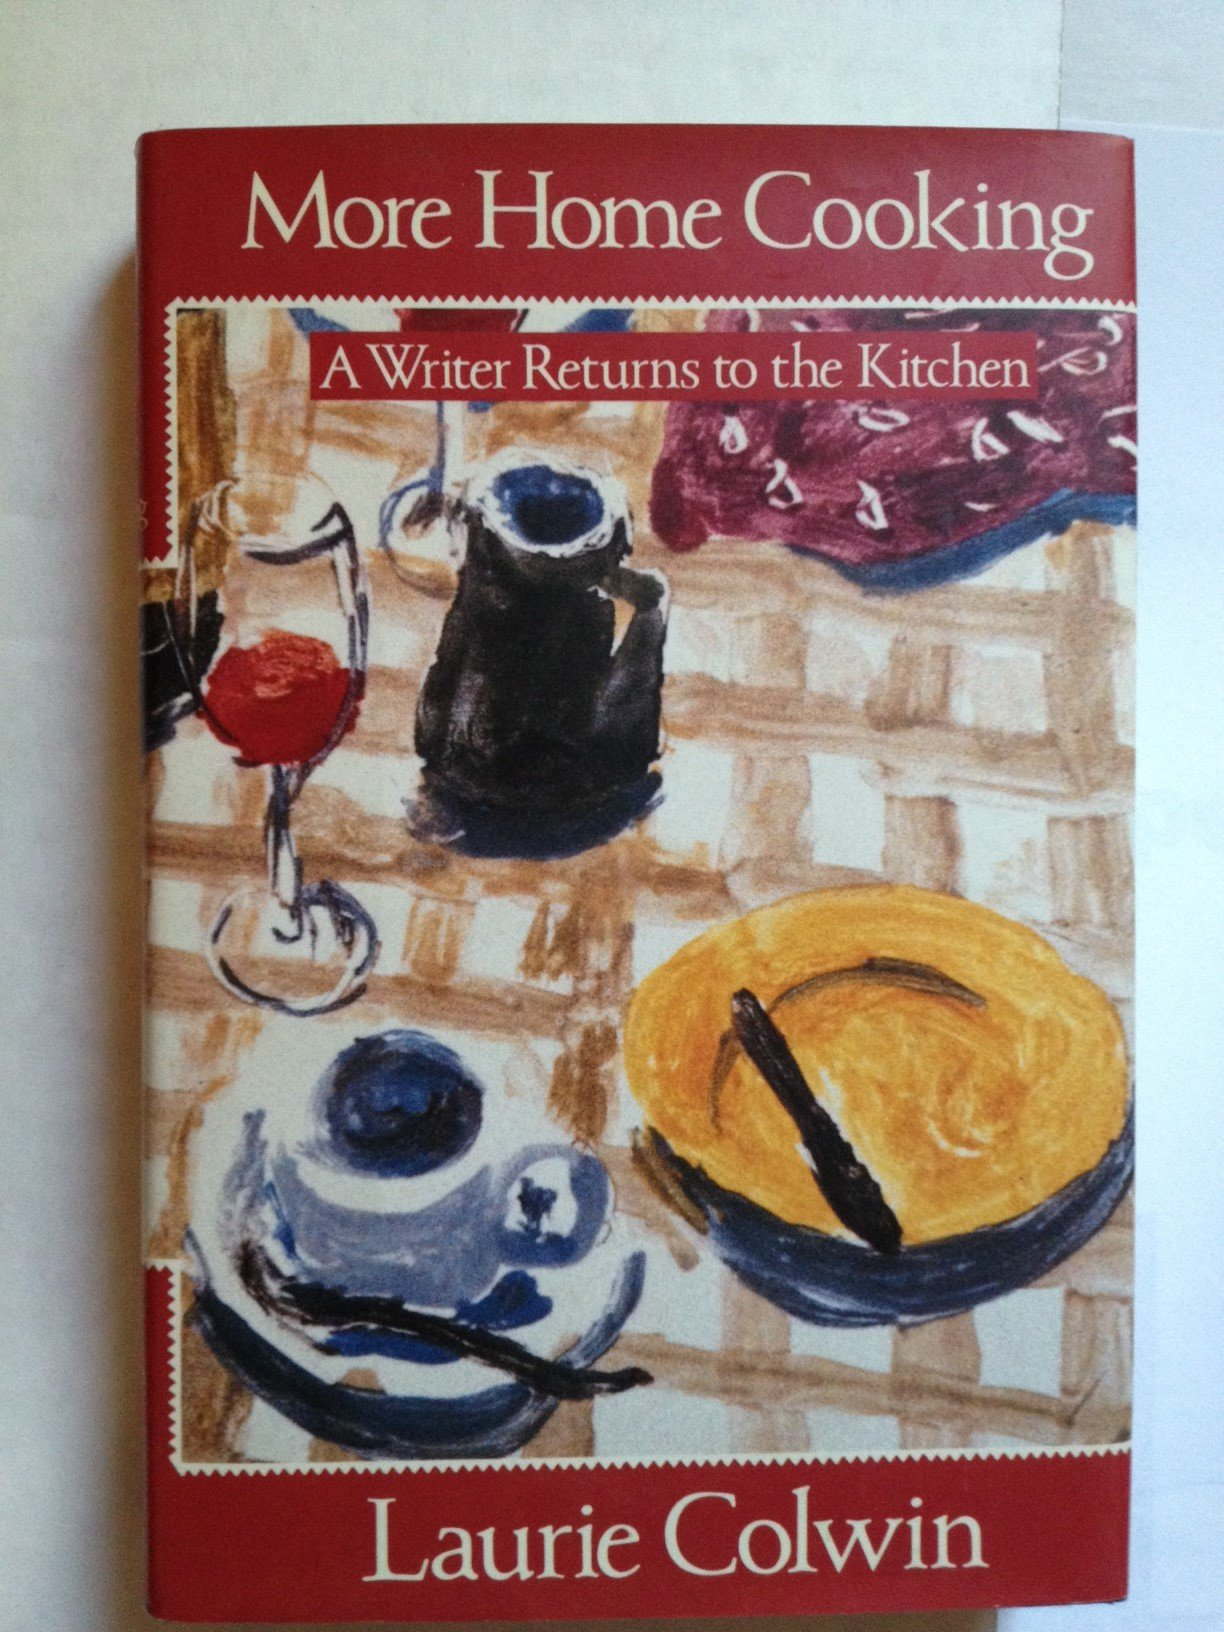 More Home Cooking Returns Kitchen product image